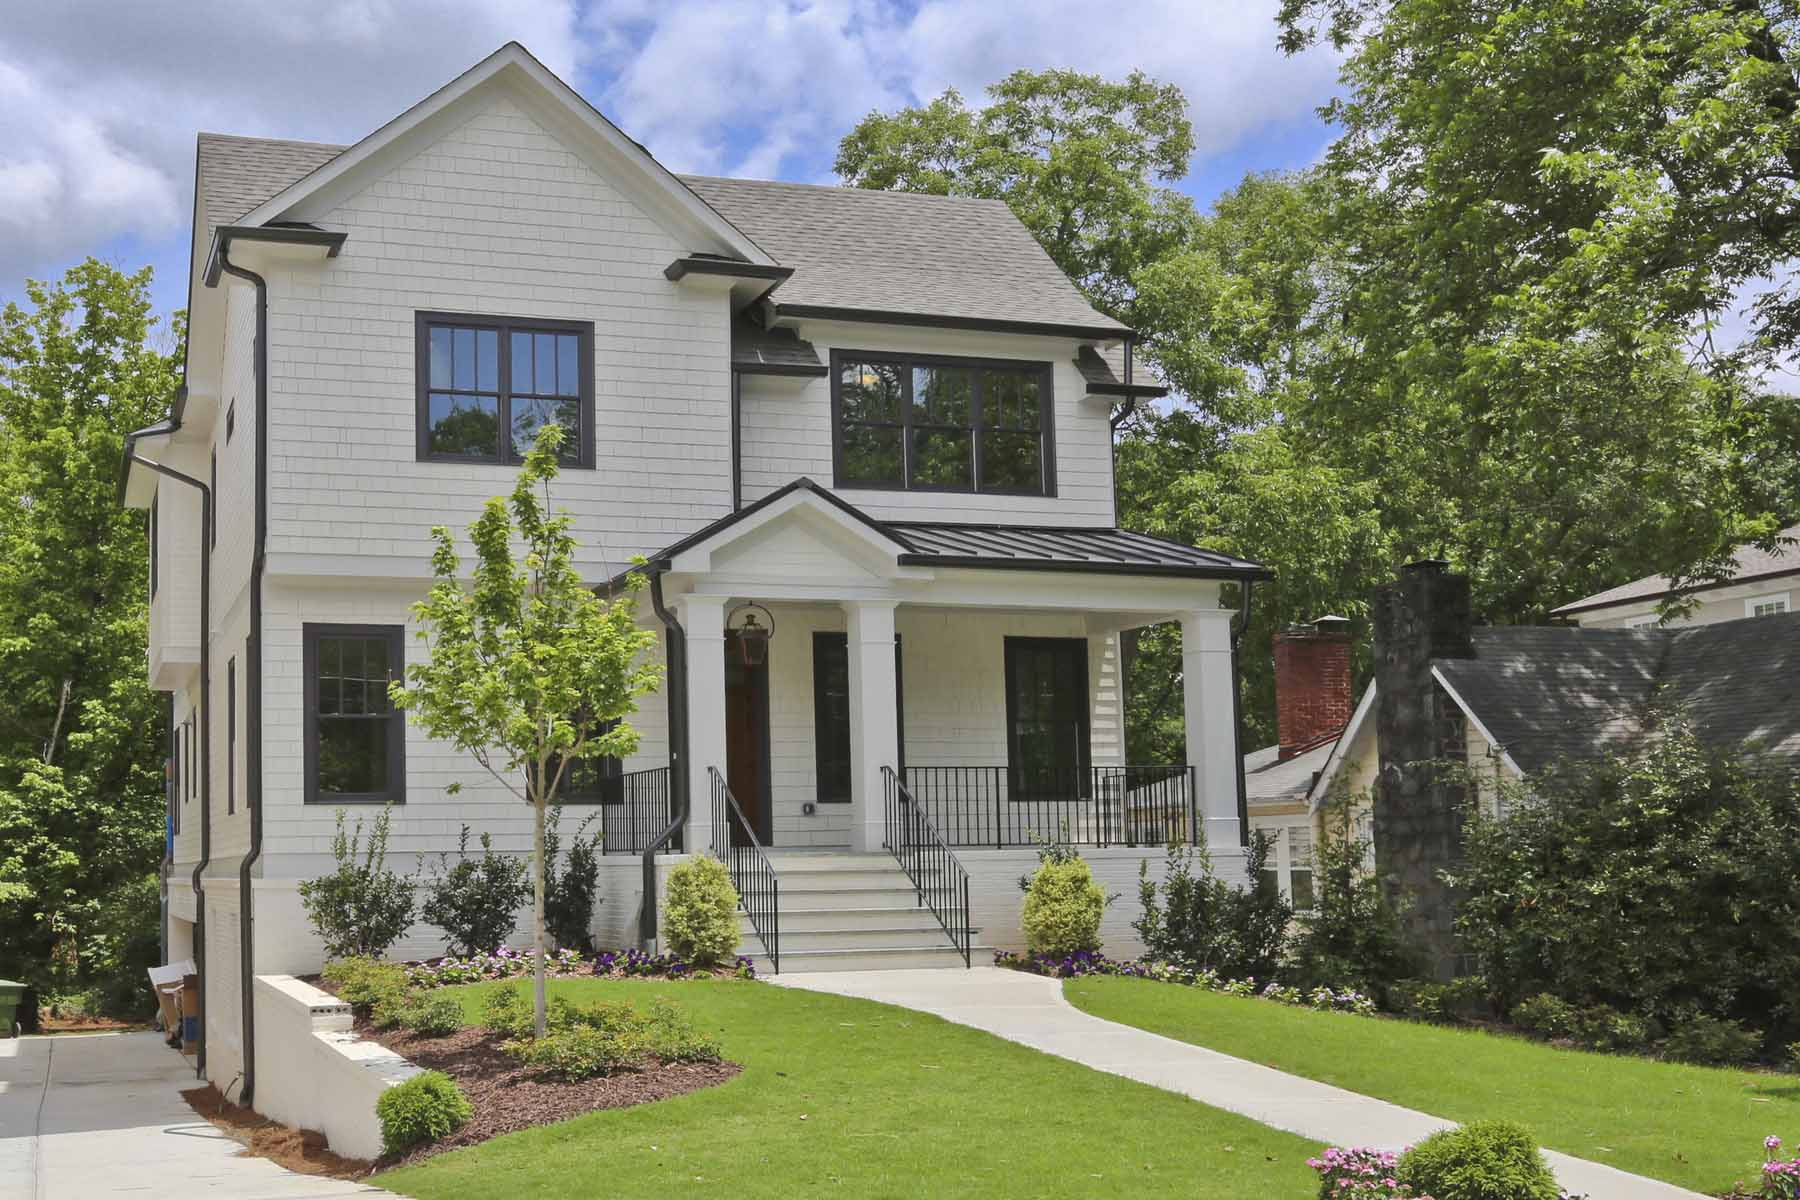 Single Family Home for Sale at New Construction in Buckhead 2901 Lookout Place NE Garden Hills, Atlanta, Georgia, 30305 United States